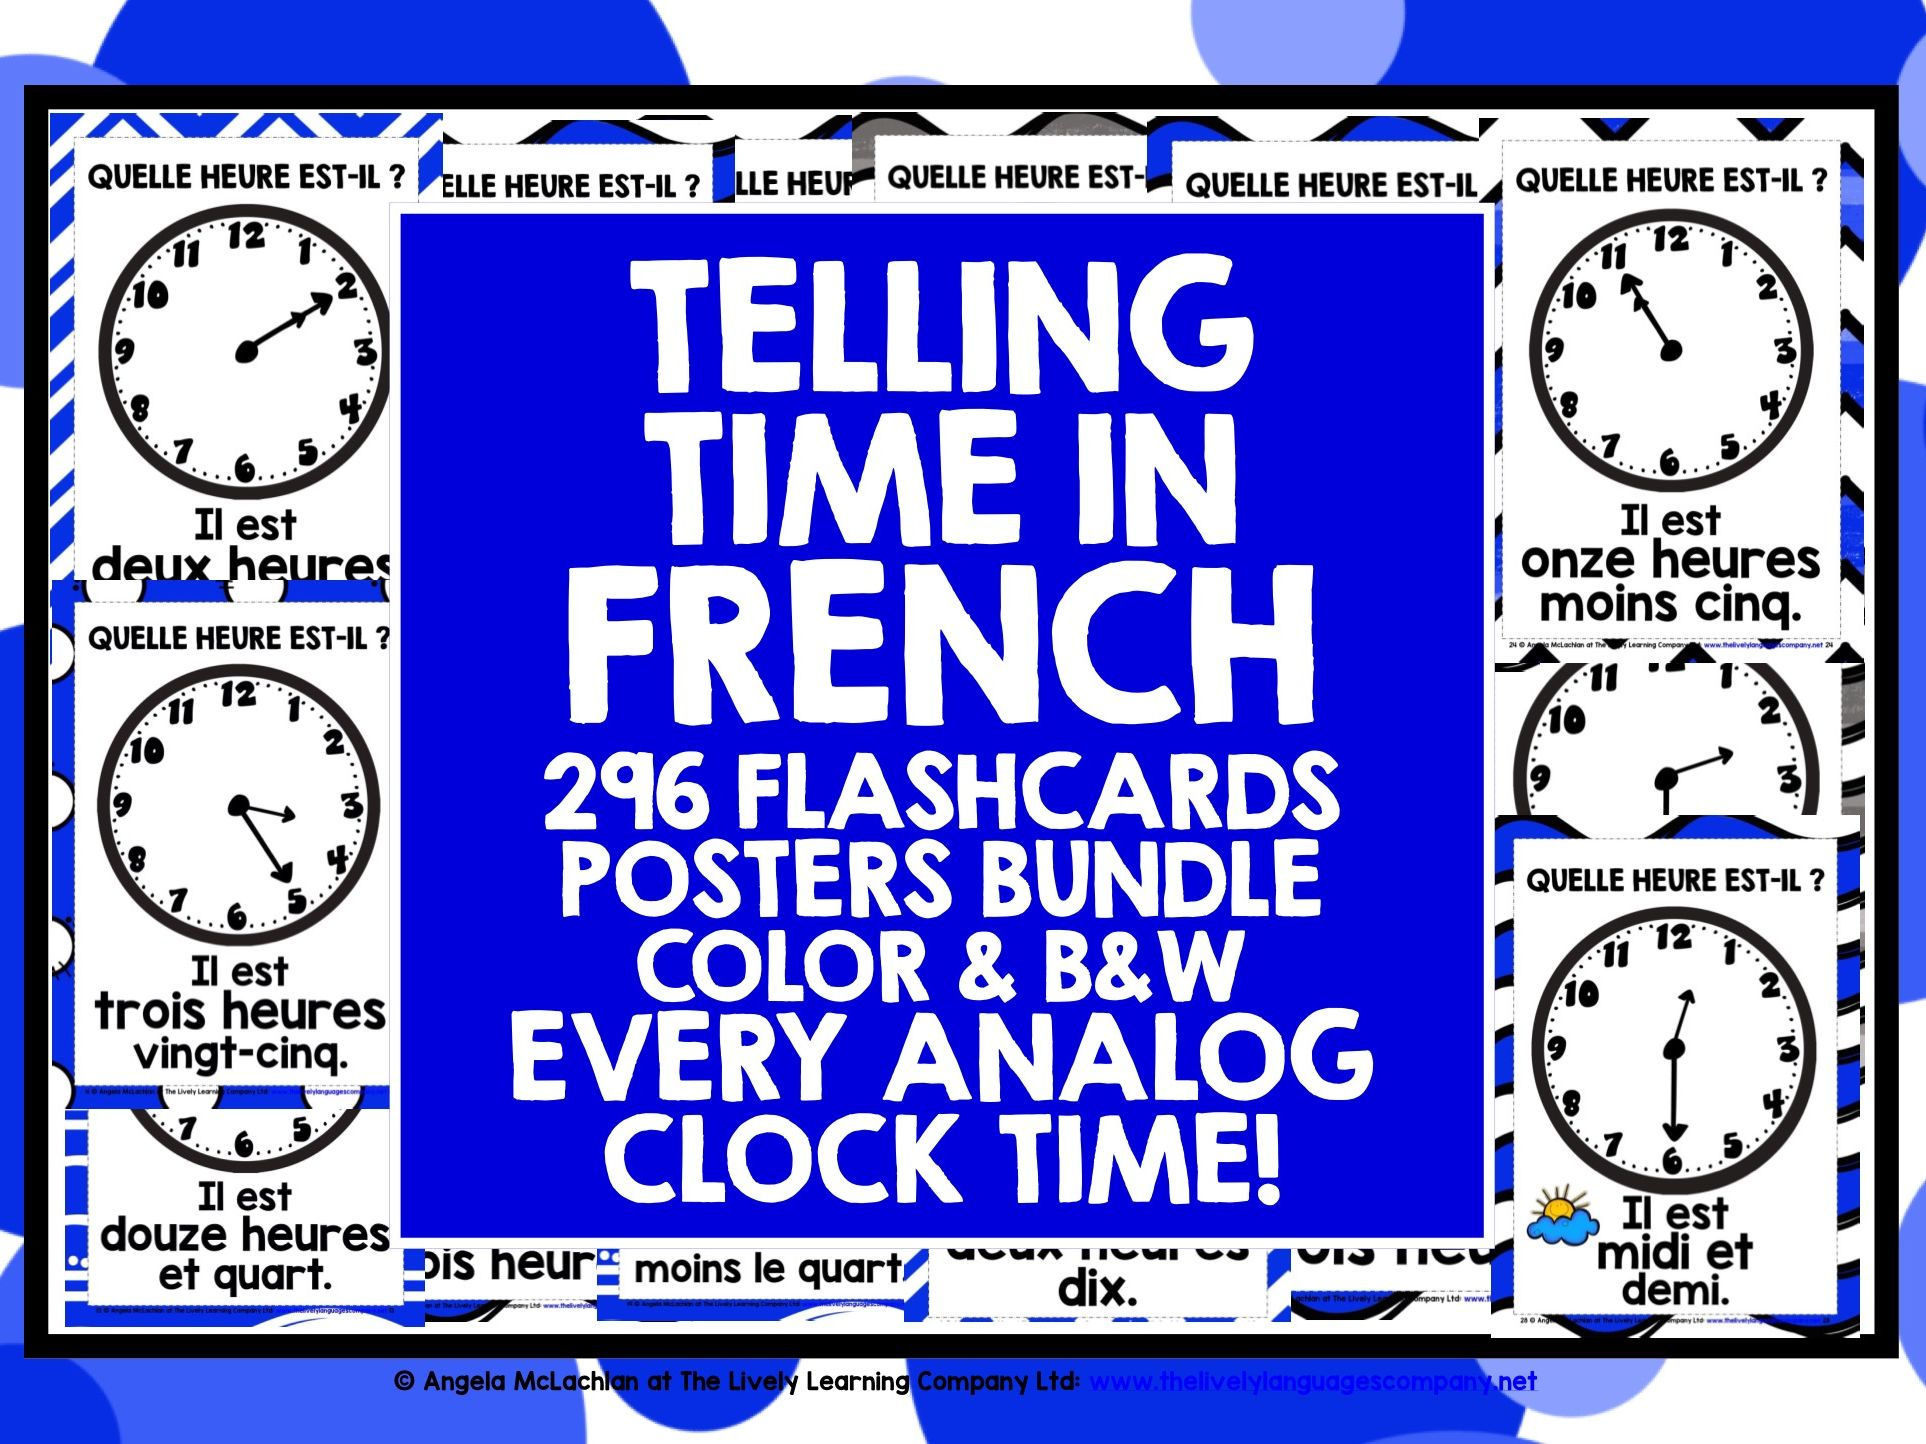 ELEMENTARY FRENCH TELLING TIME FLASHCARDS POSTERS